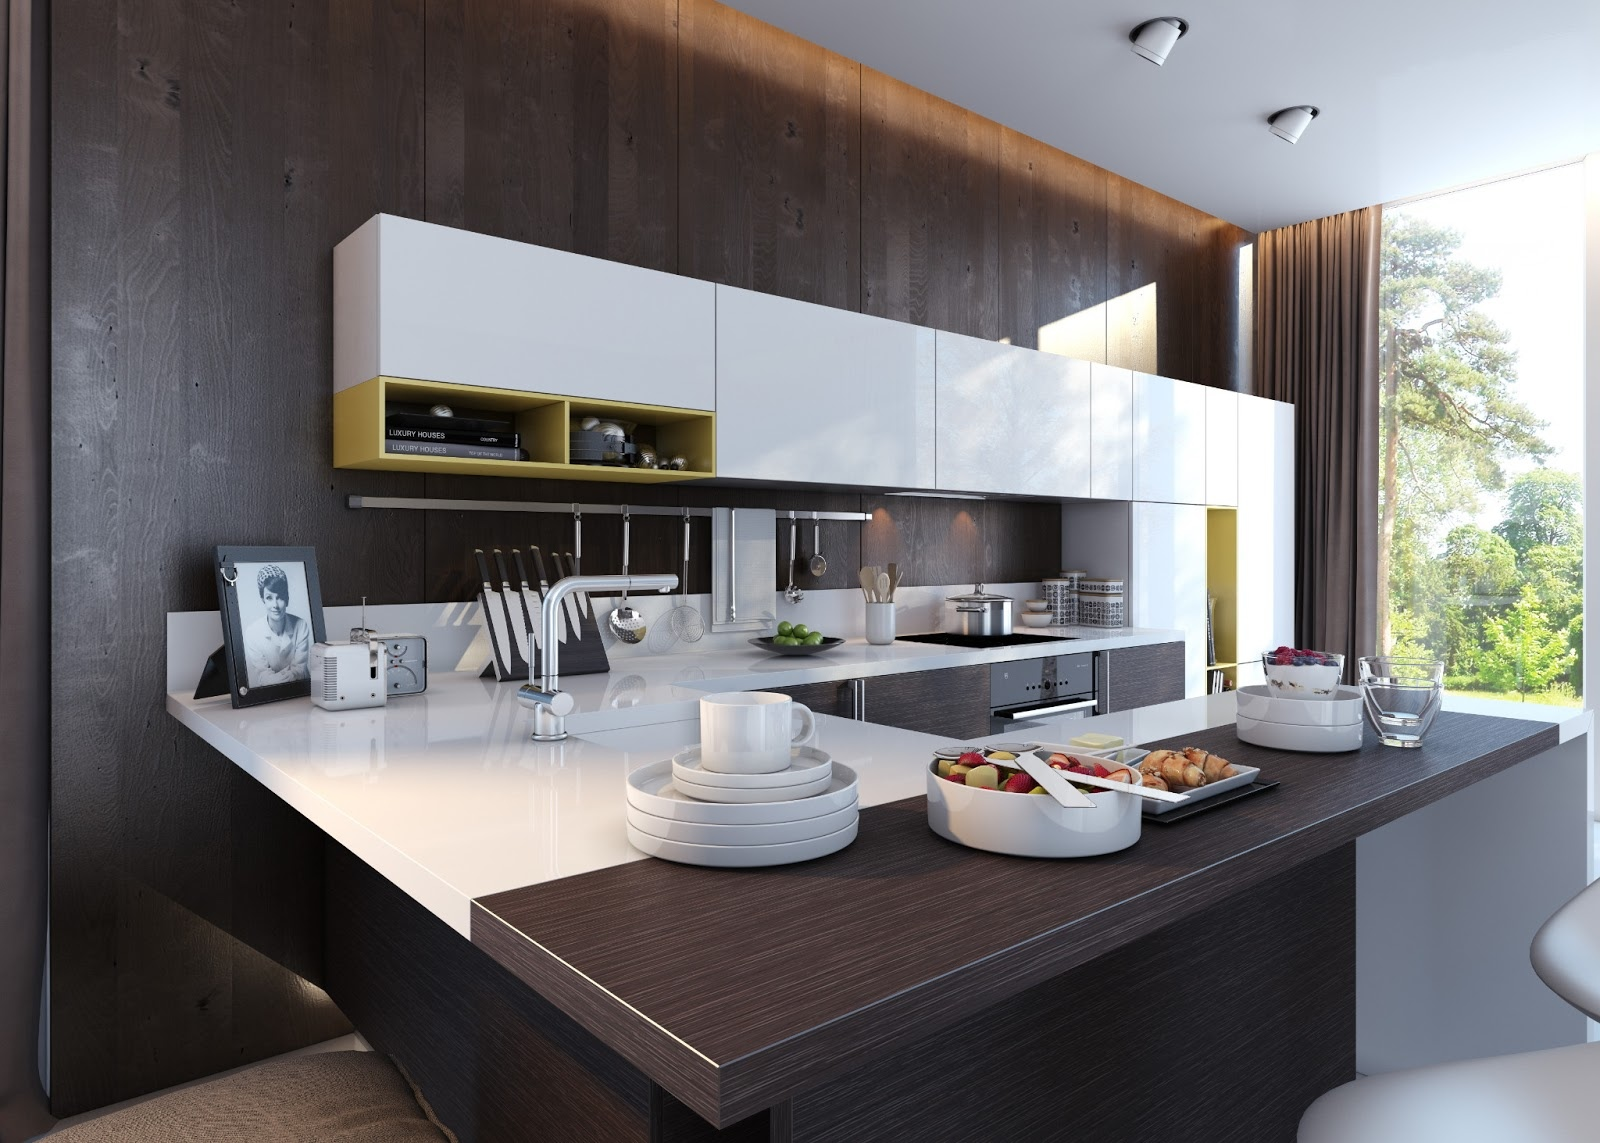 2 minimalist kitchen design that will stunning youartem